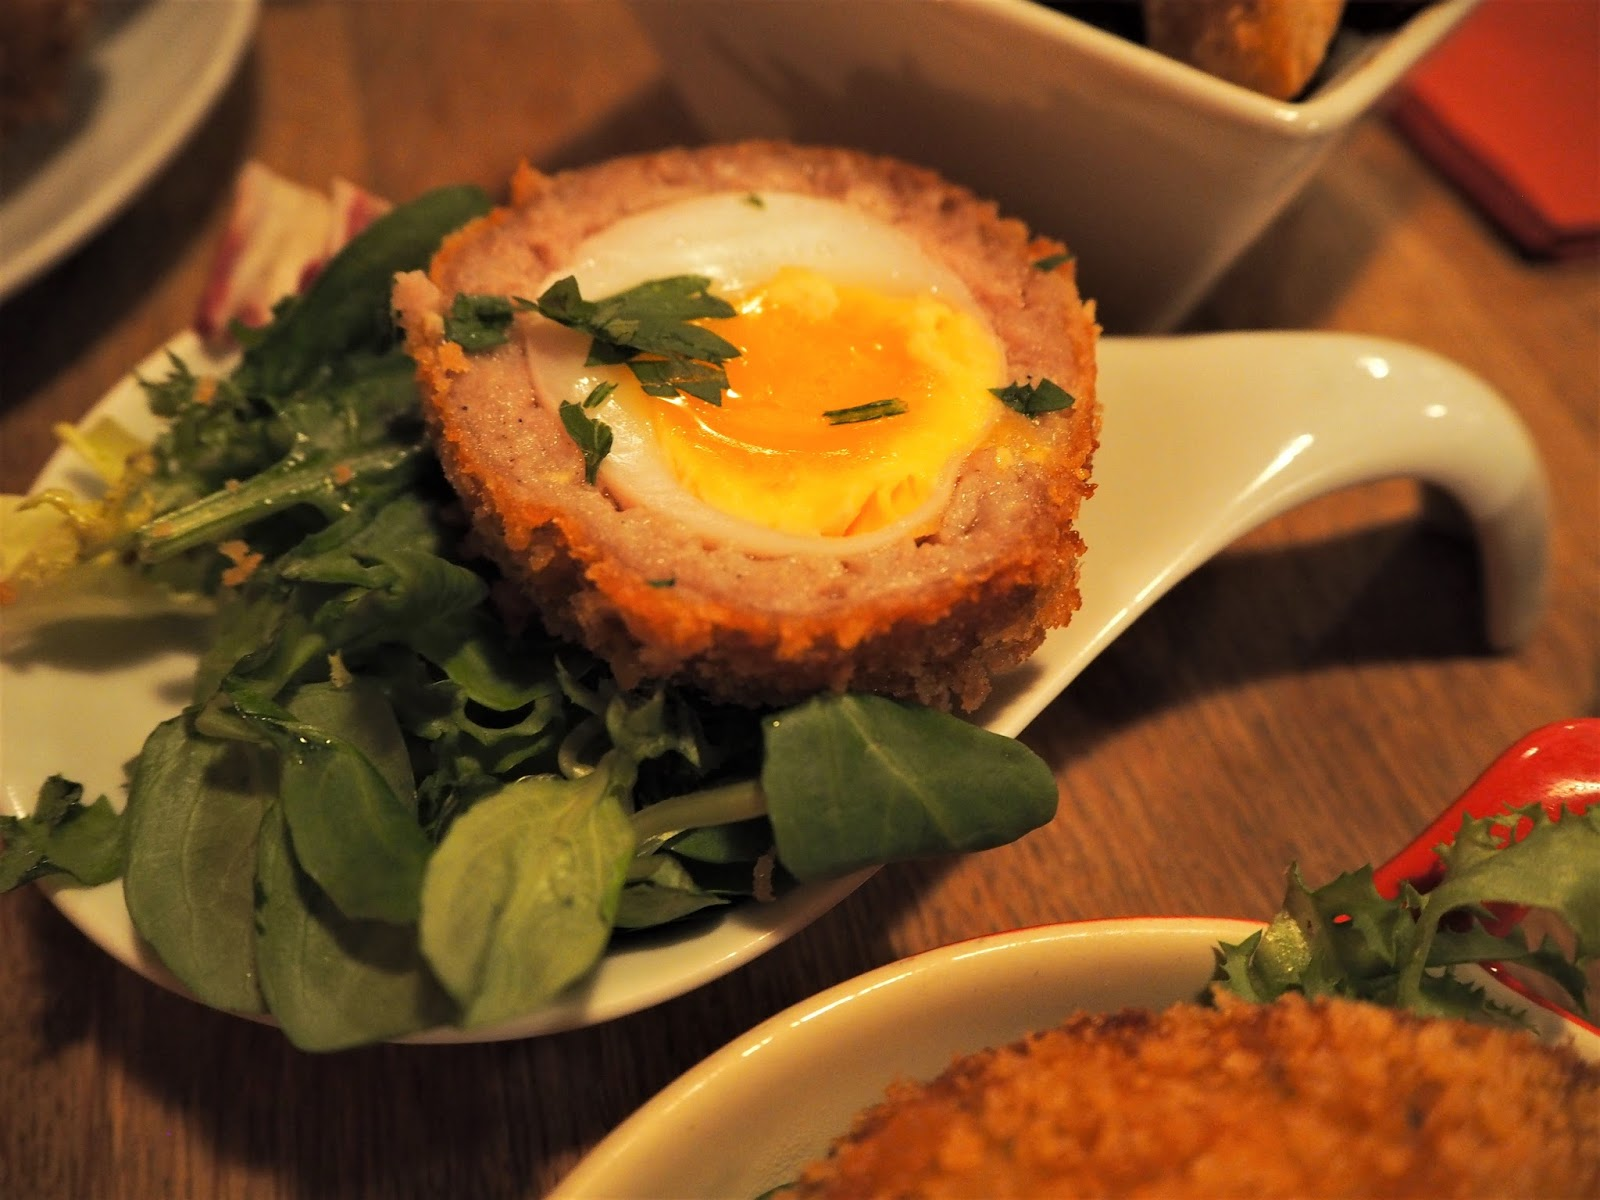 Restaurant review of Number 23 (British Tapas) in St Albans, UK